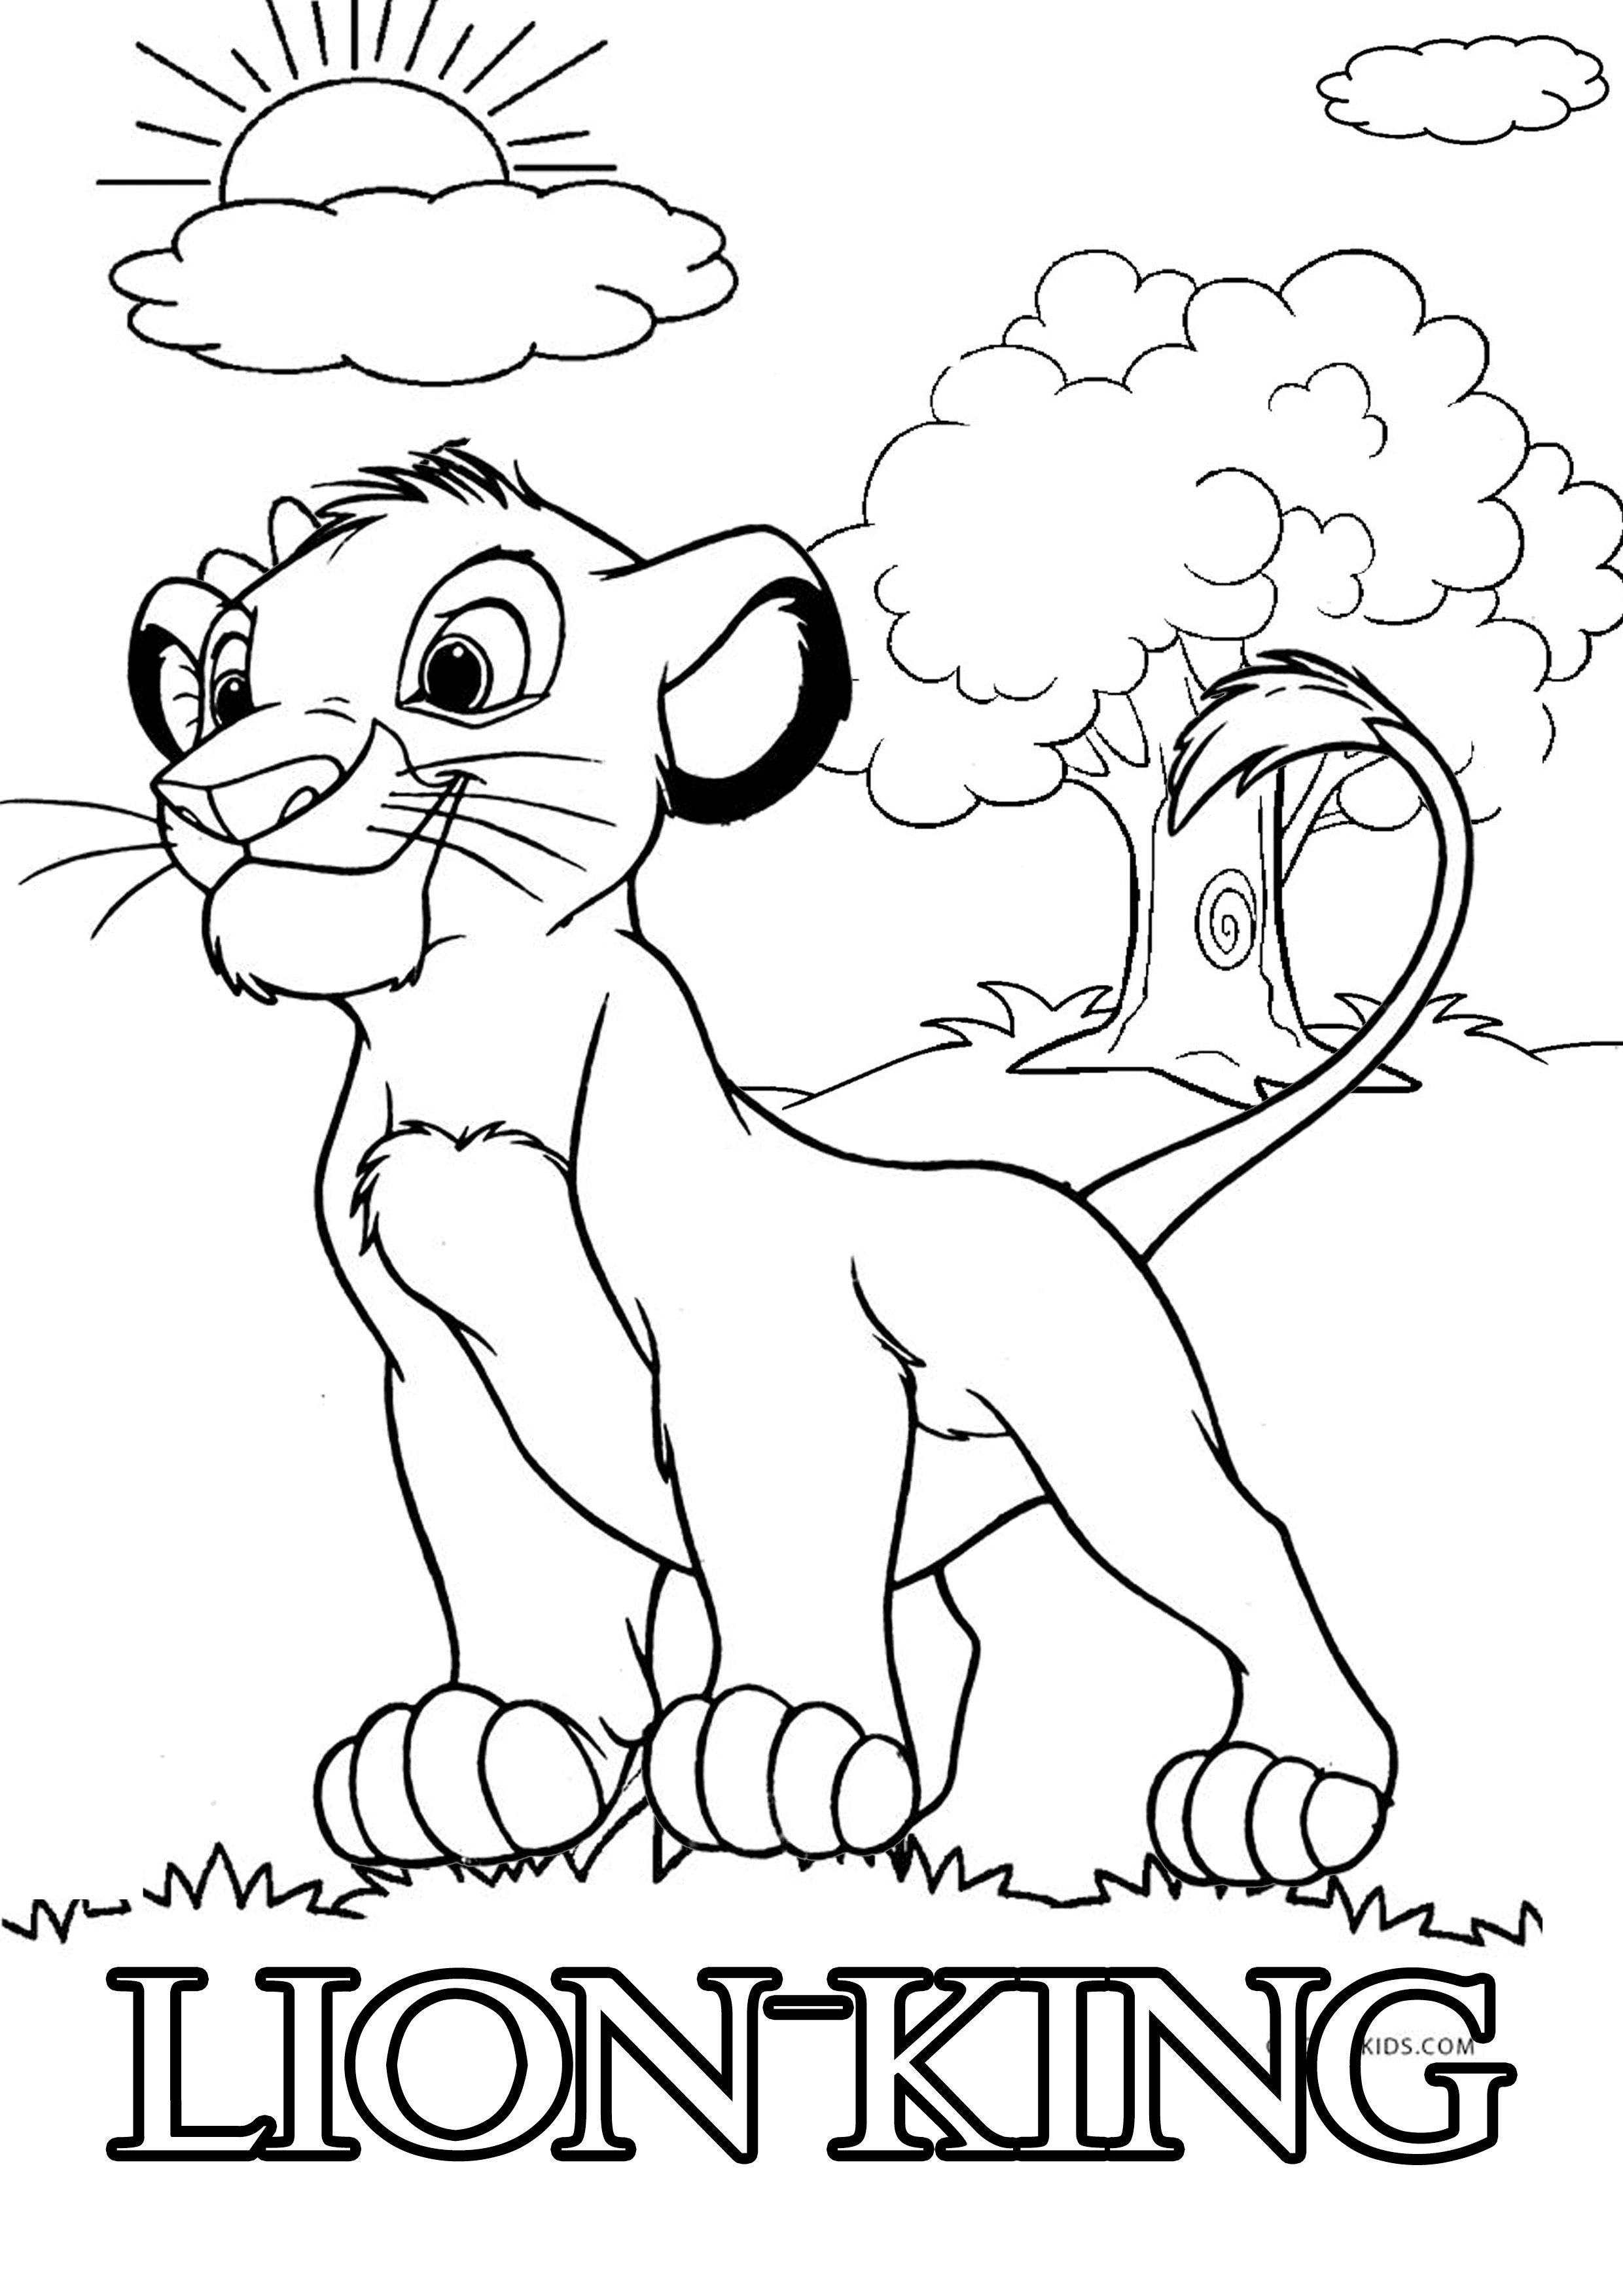 Now I Publish This Simba Lion King Coloring Pages Free